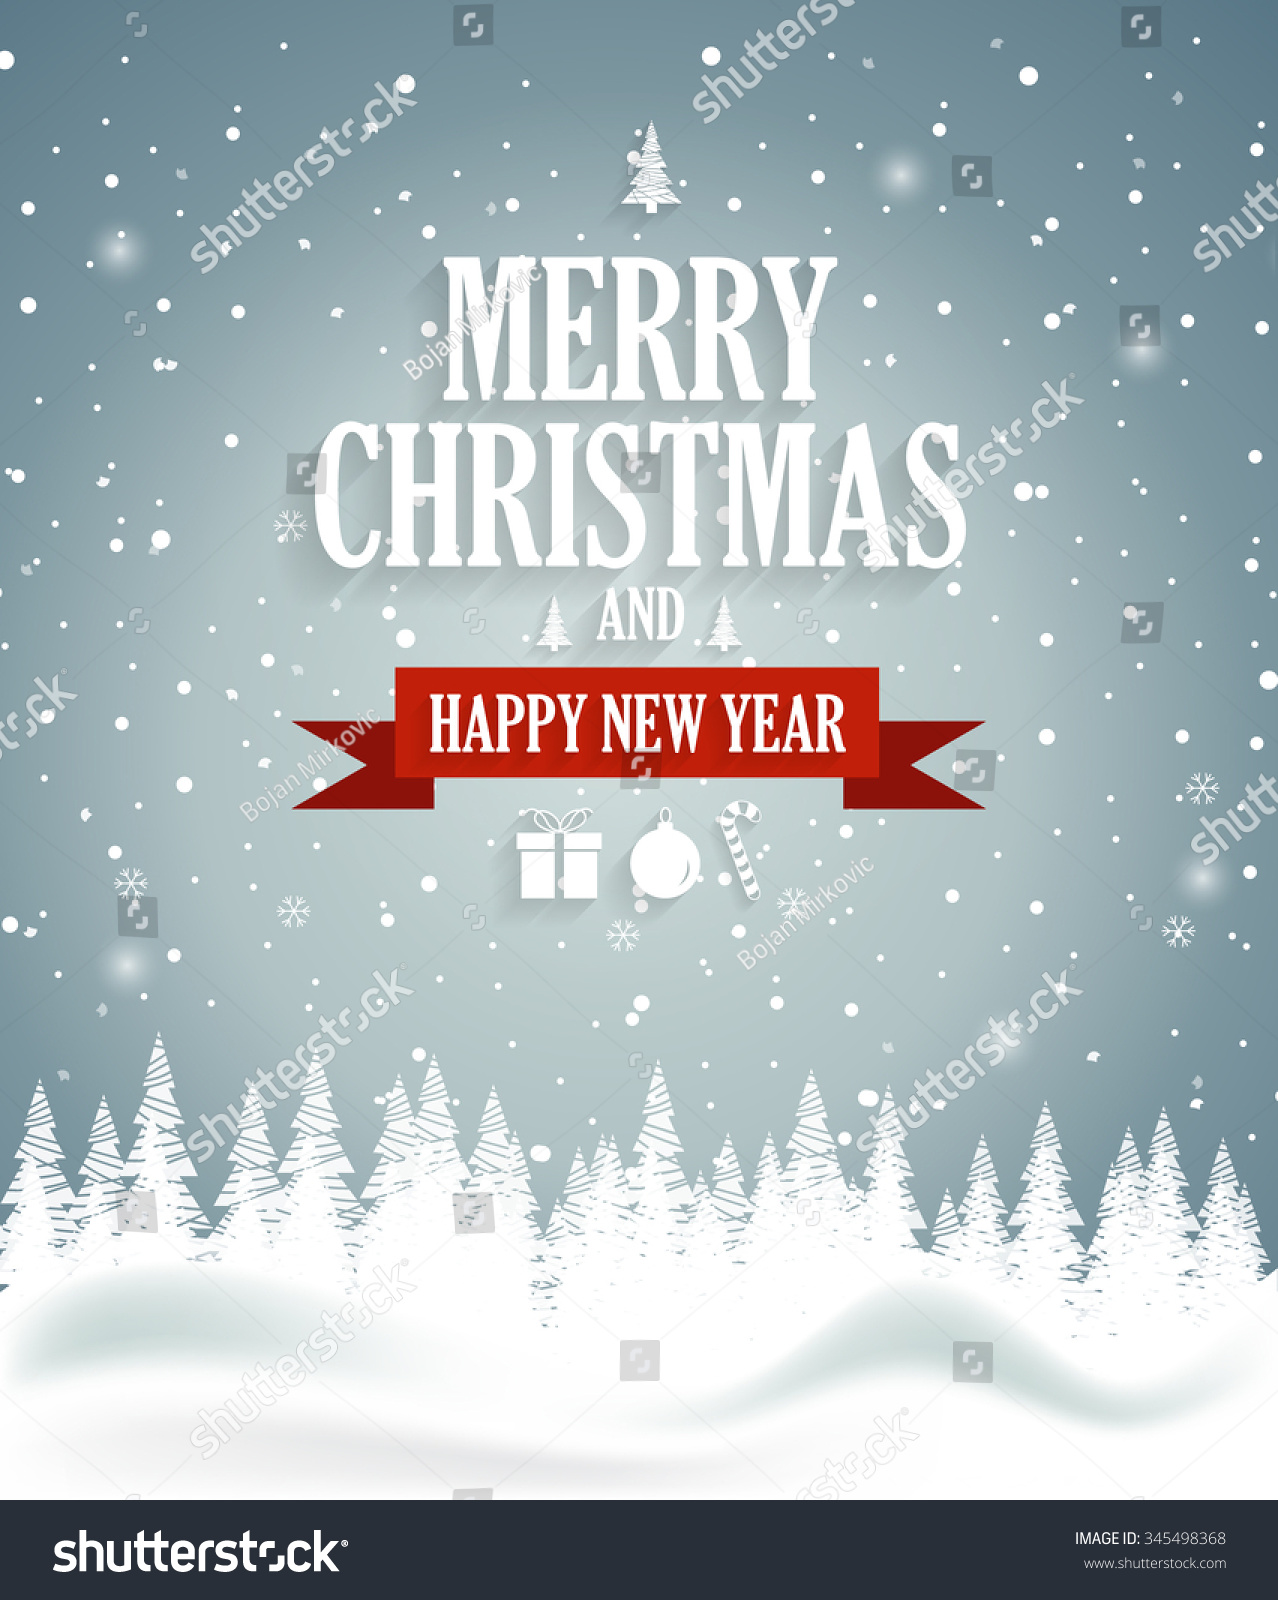 new year 2019 wishes messages quotes images greetings christmas greeting card on blue background stock vektorgrafik